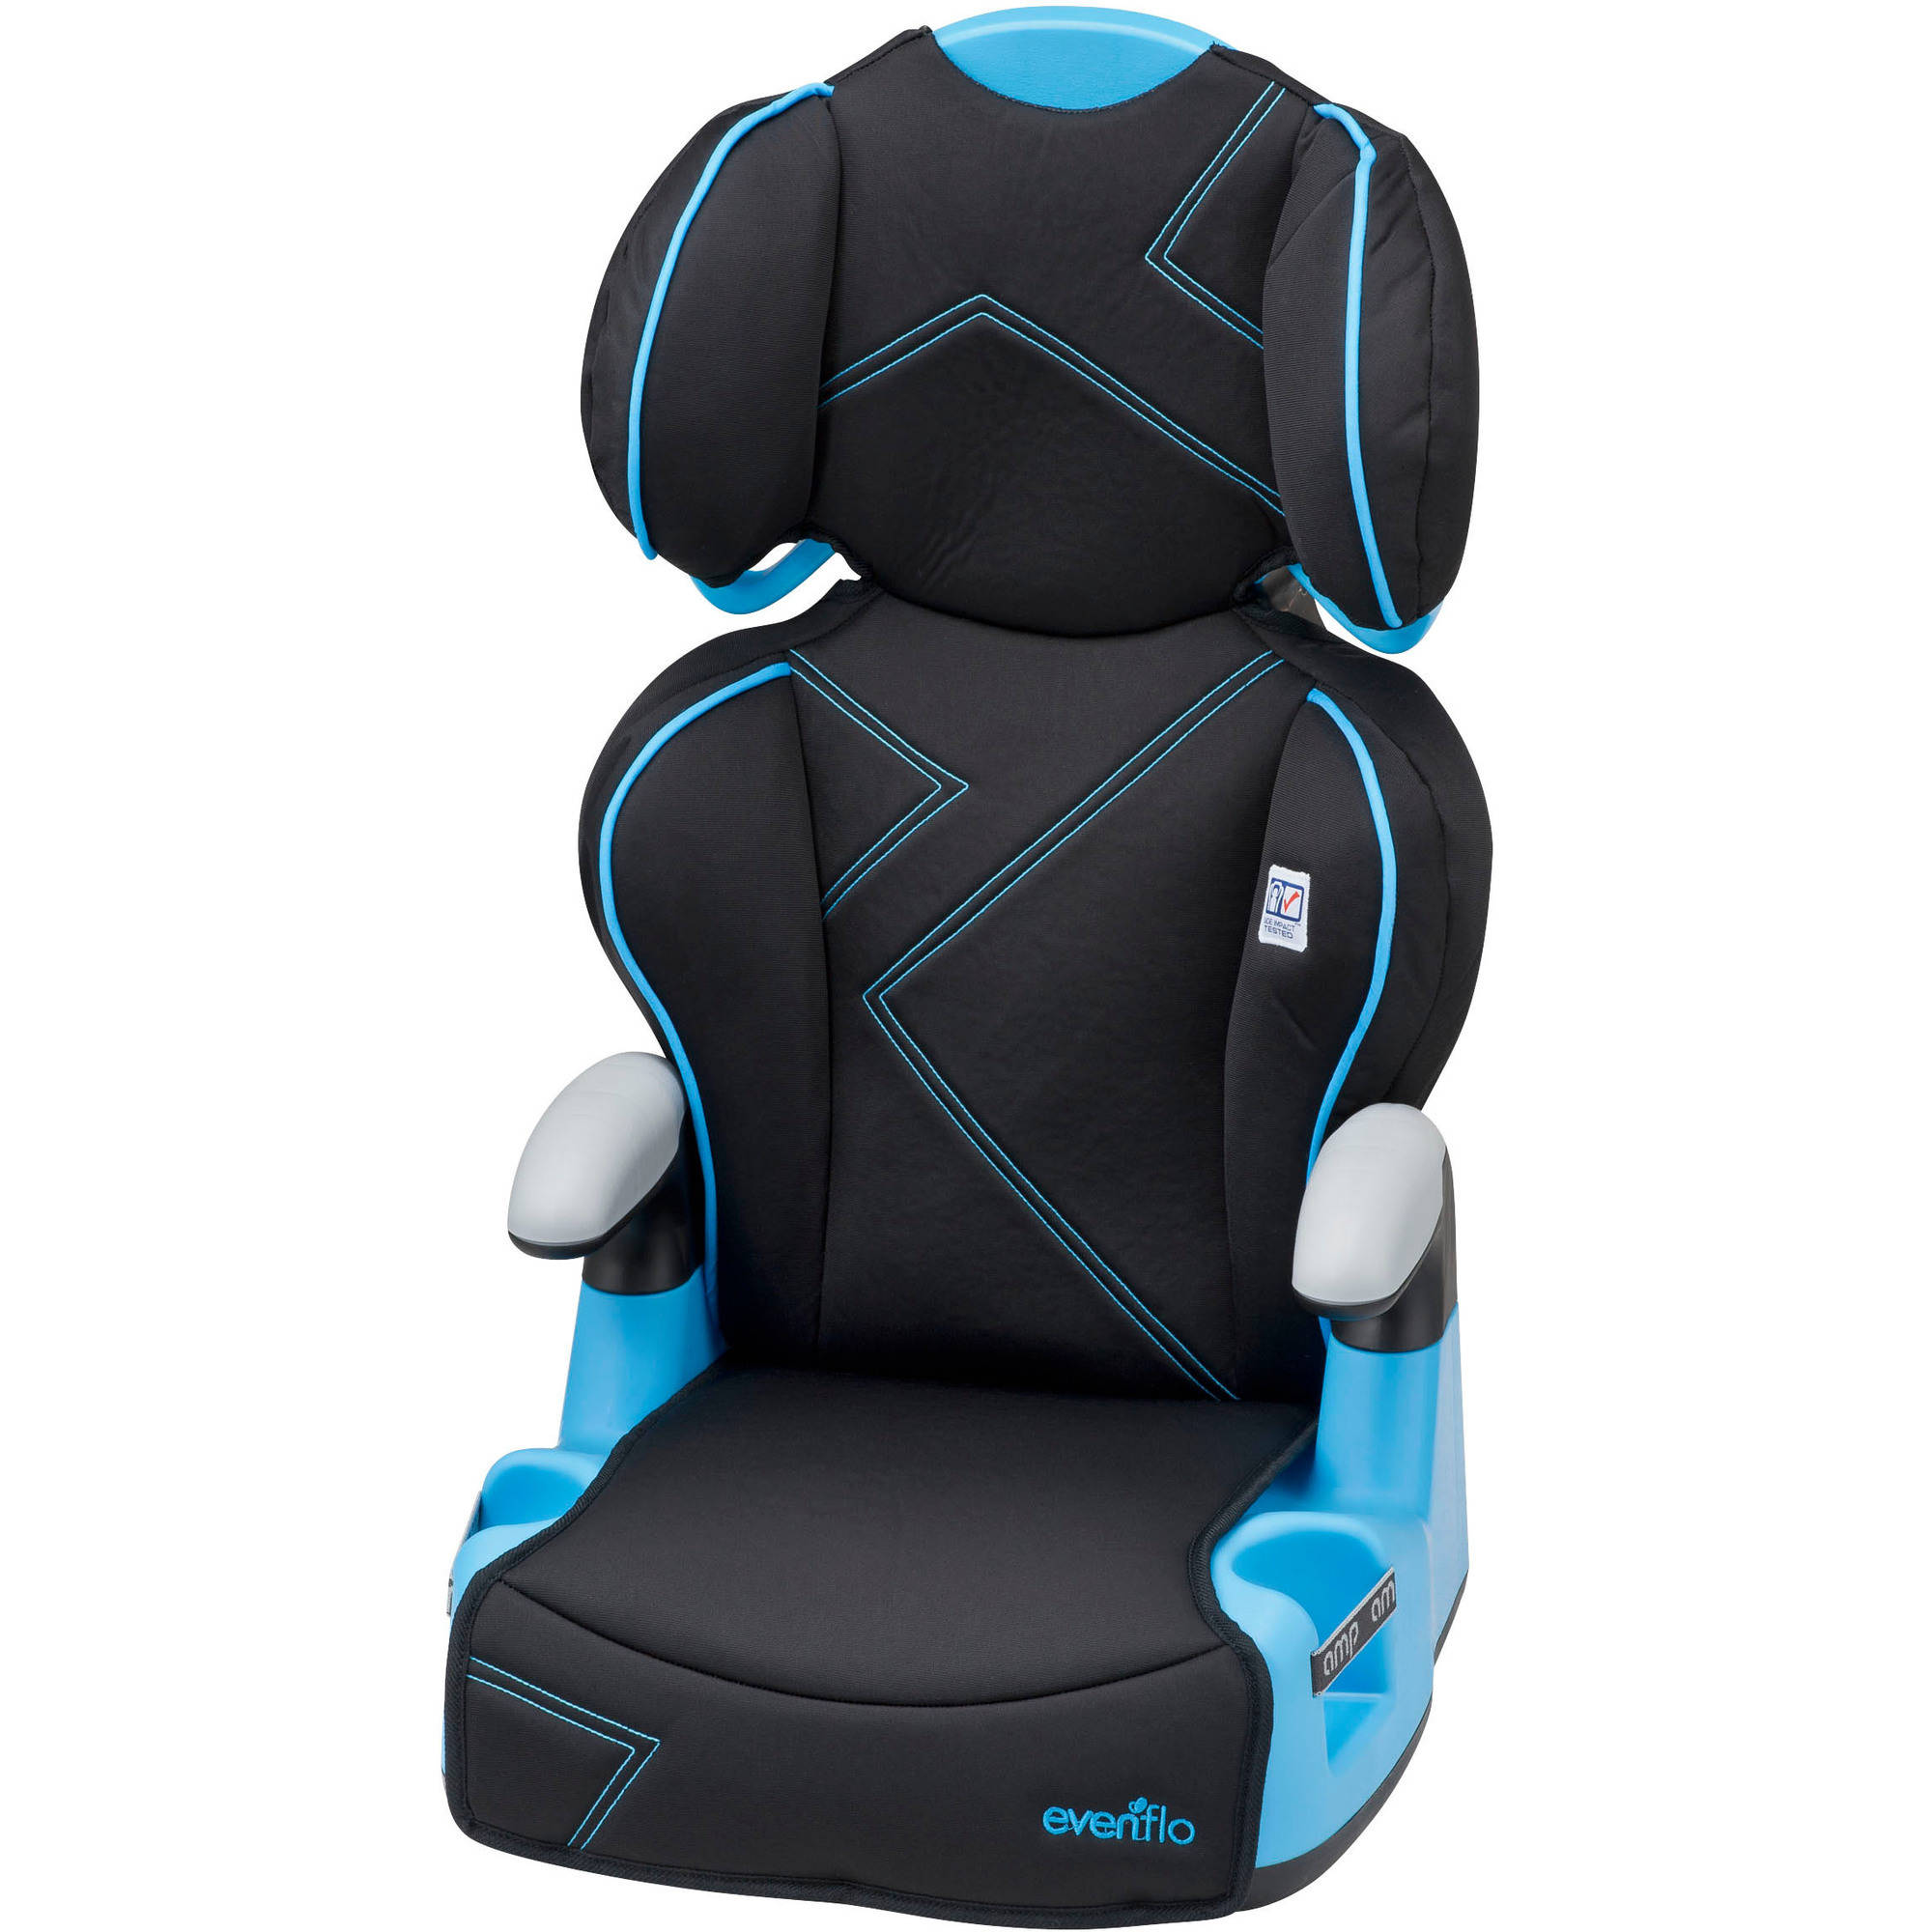 evenflo amp high back booster car seat blue angles walmart com